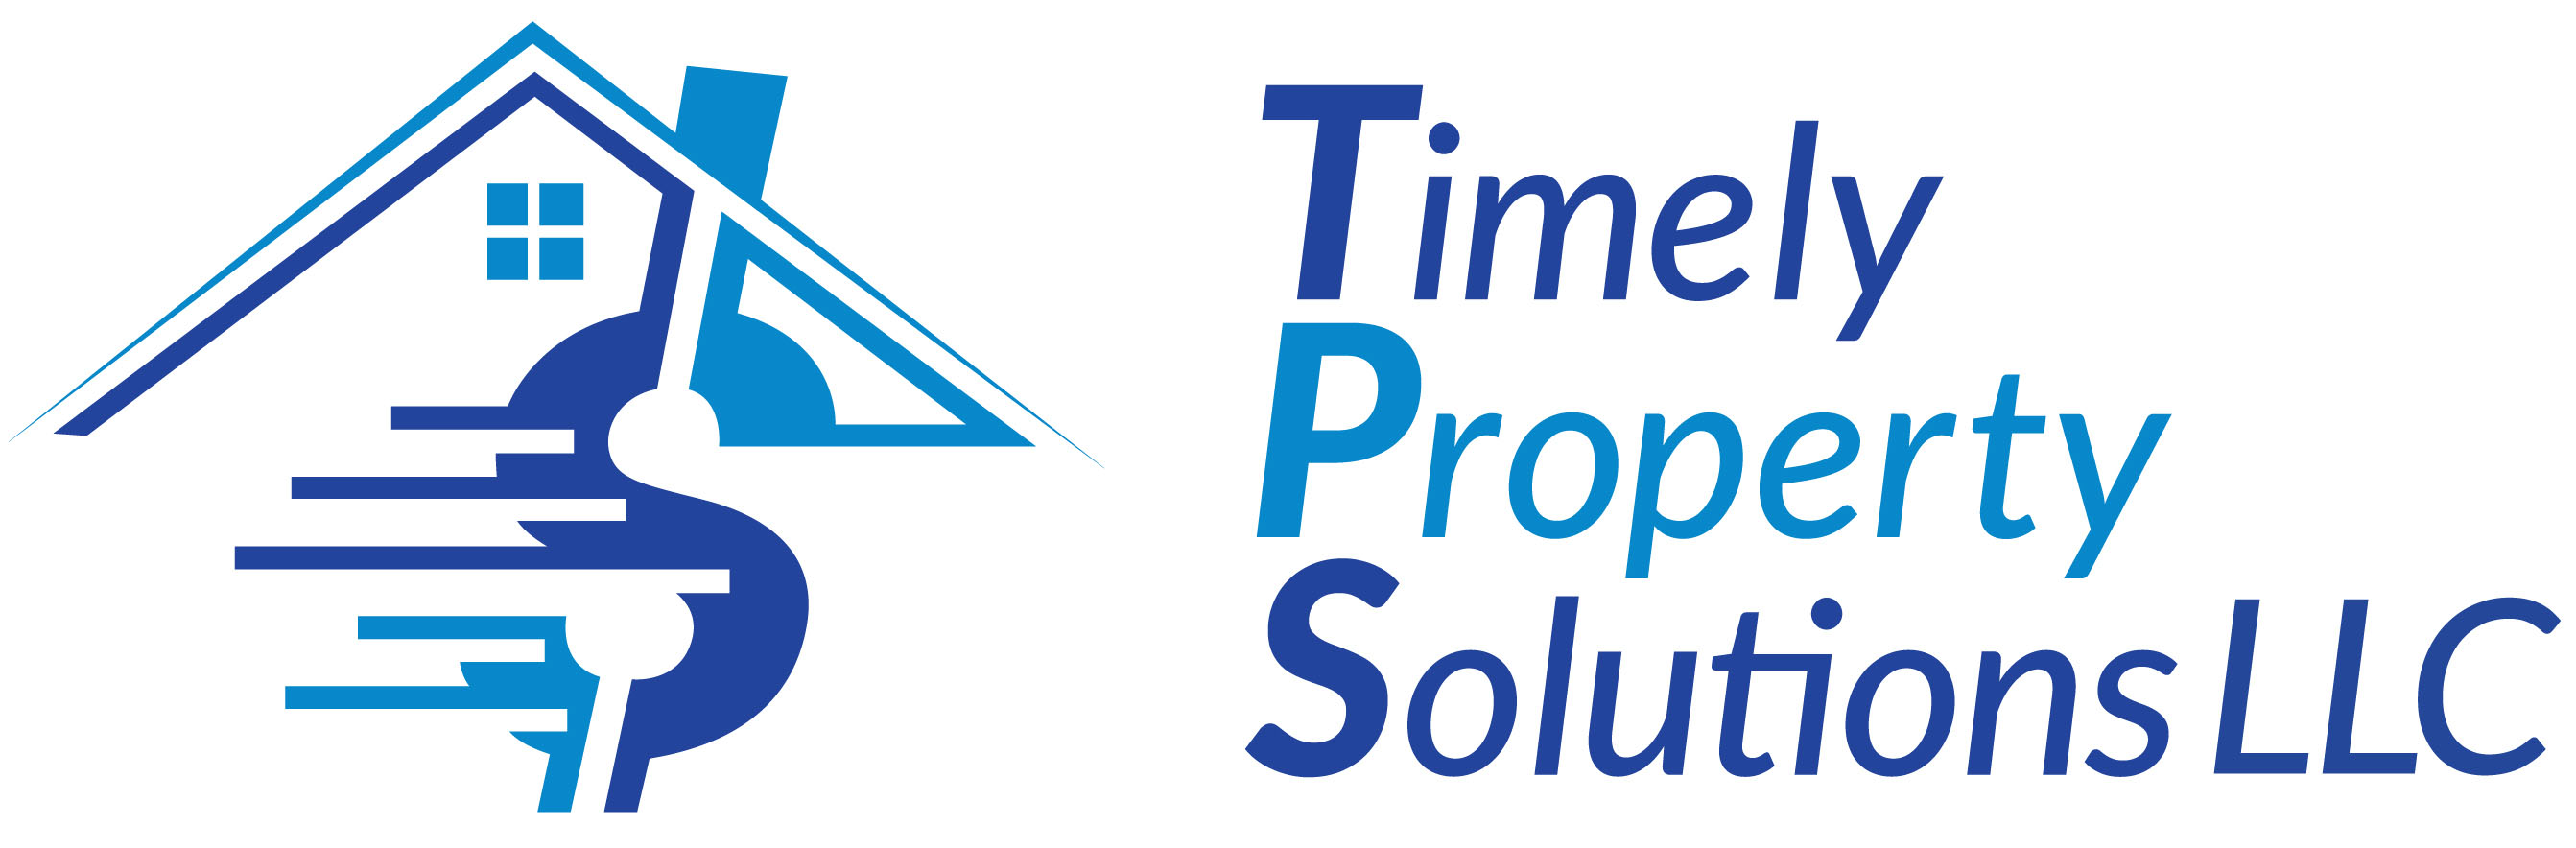 Timely Property Solutions LLC